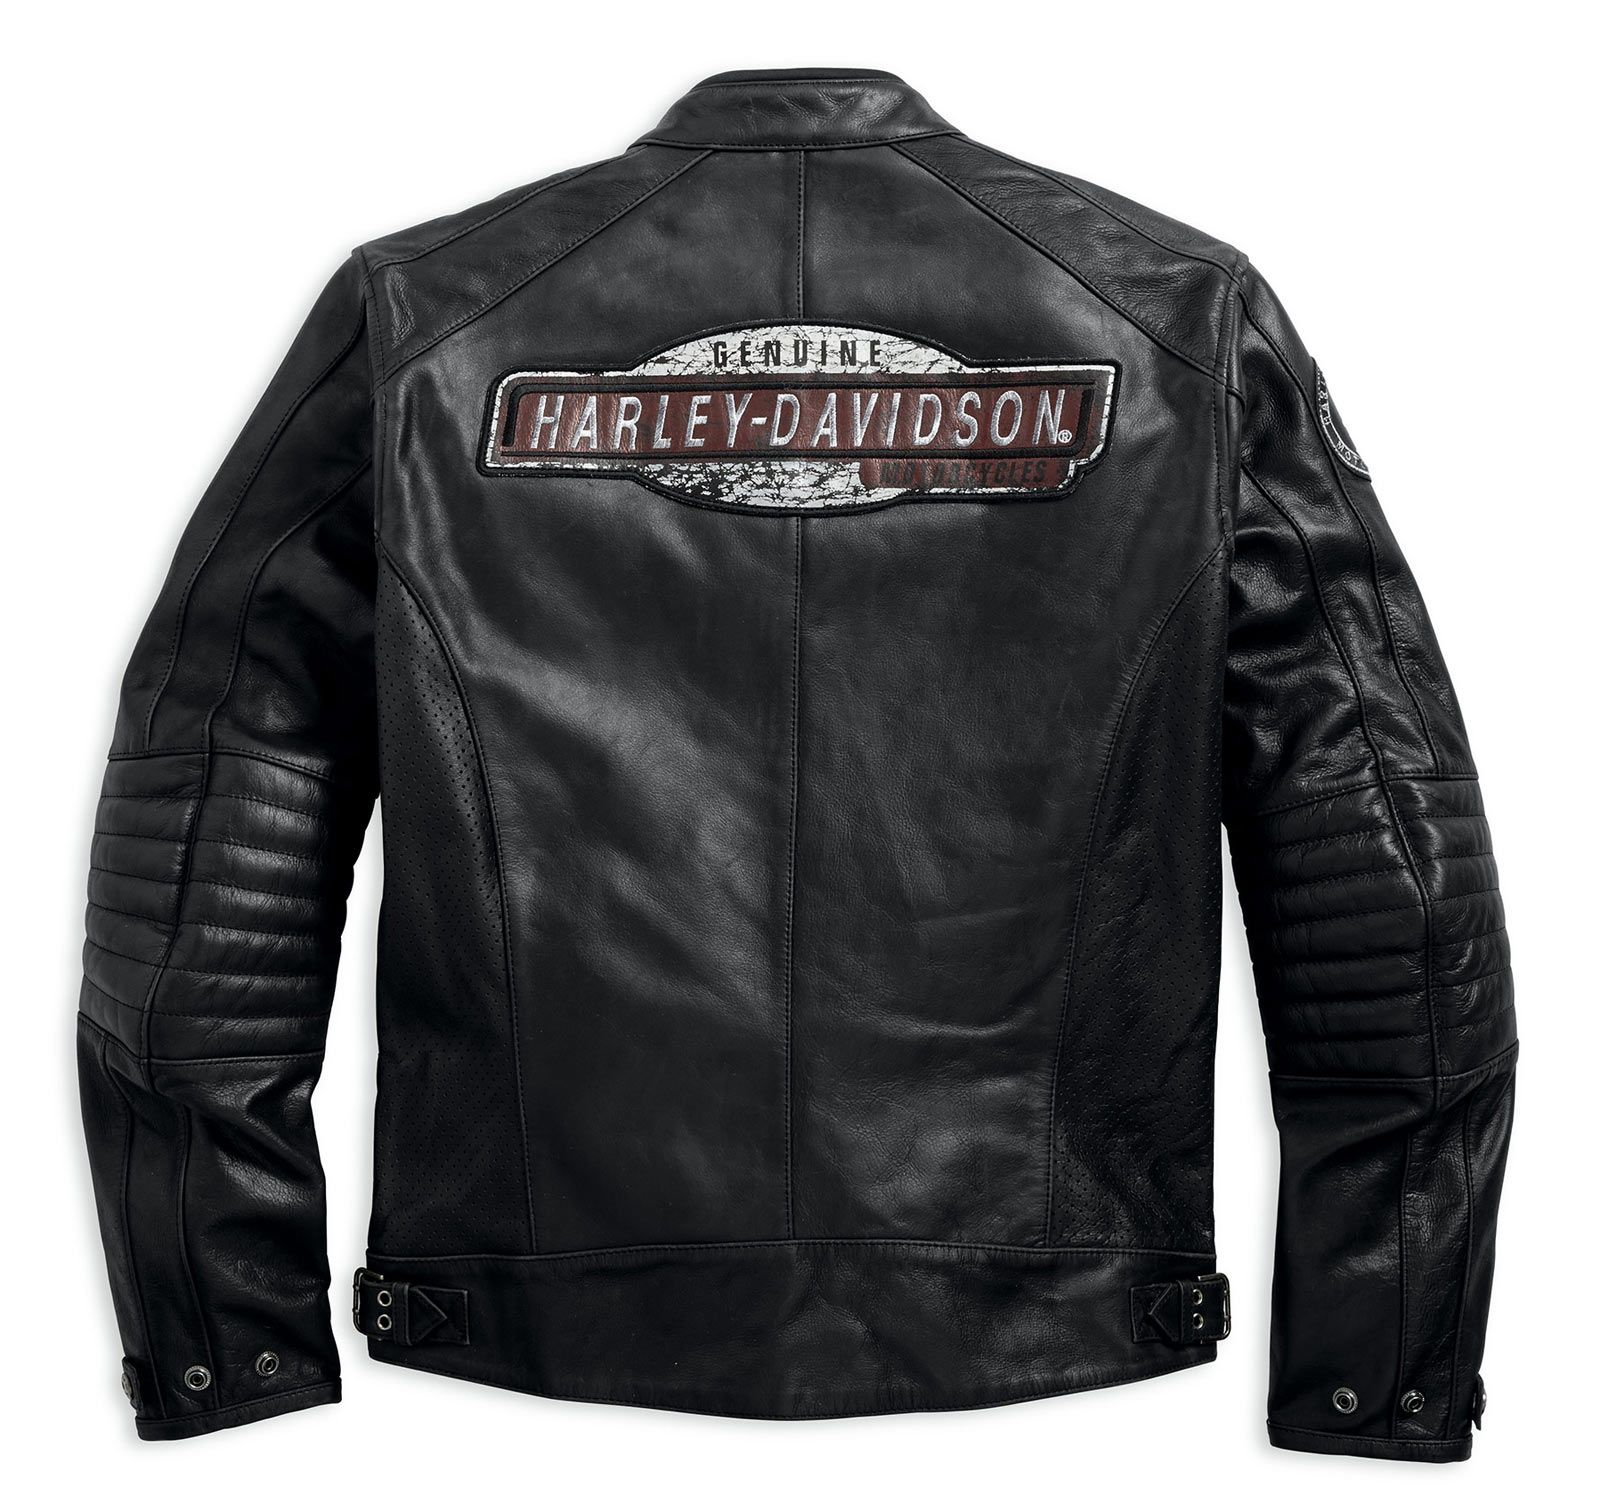 Harley davidson perforated leather jacket